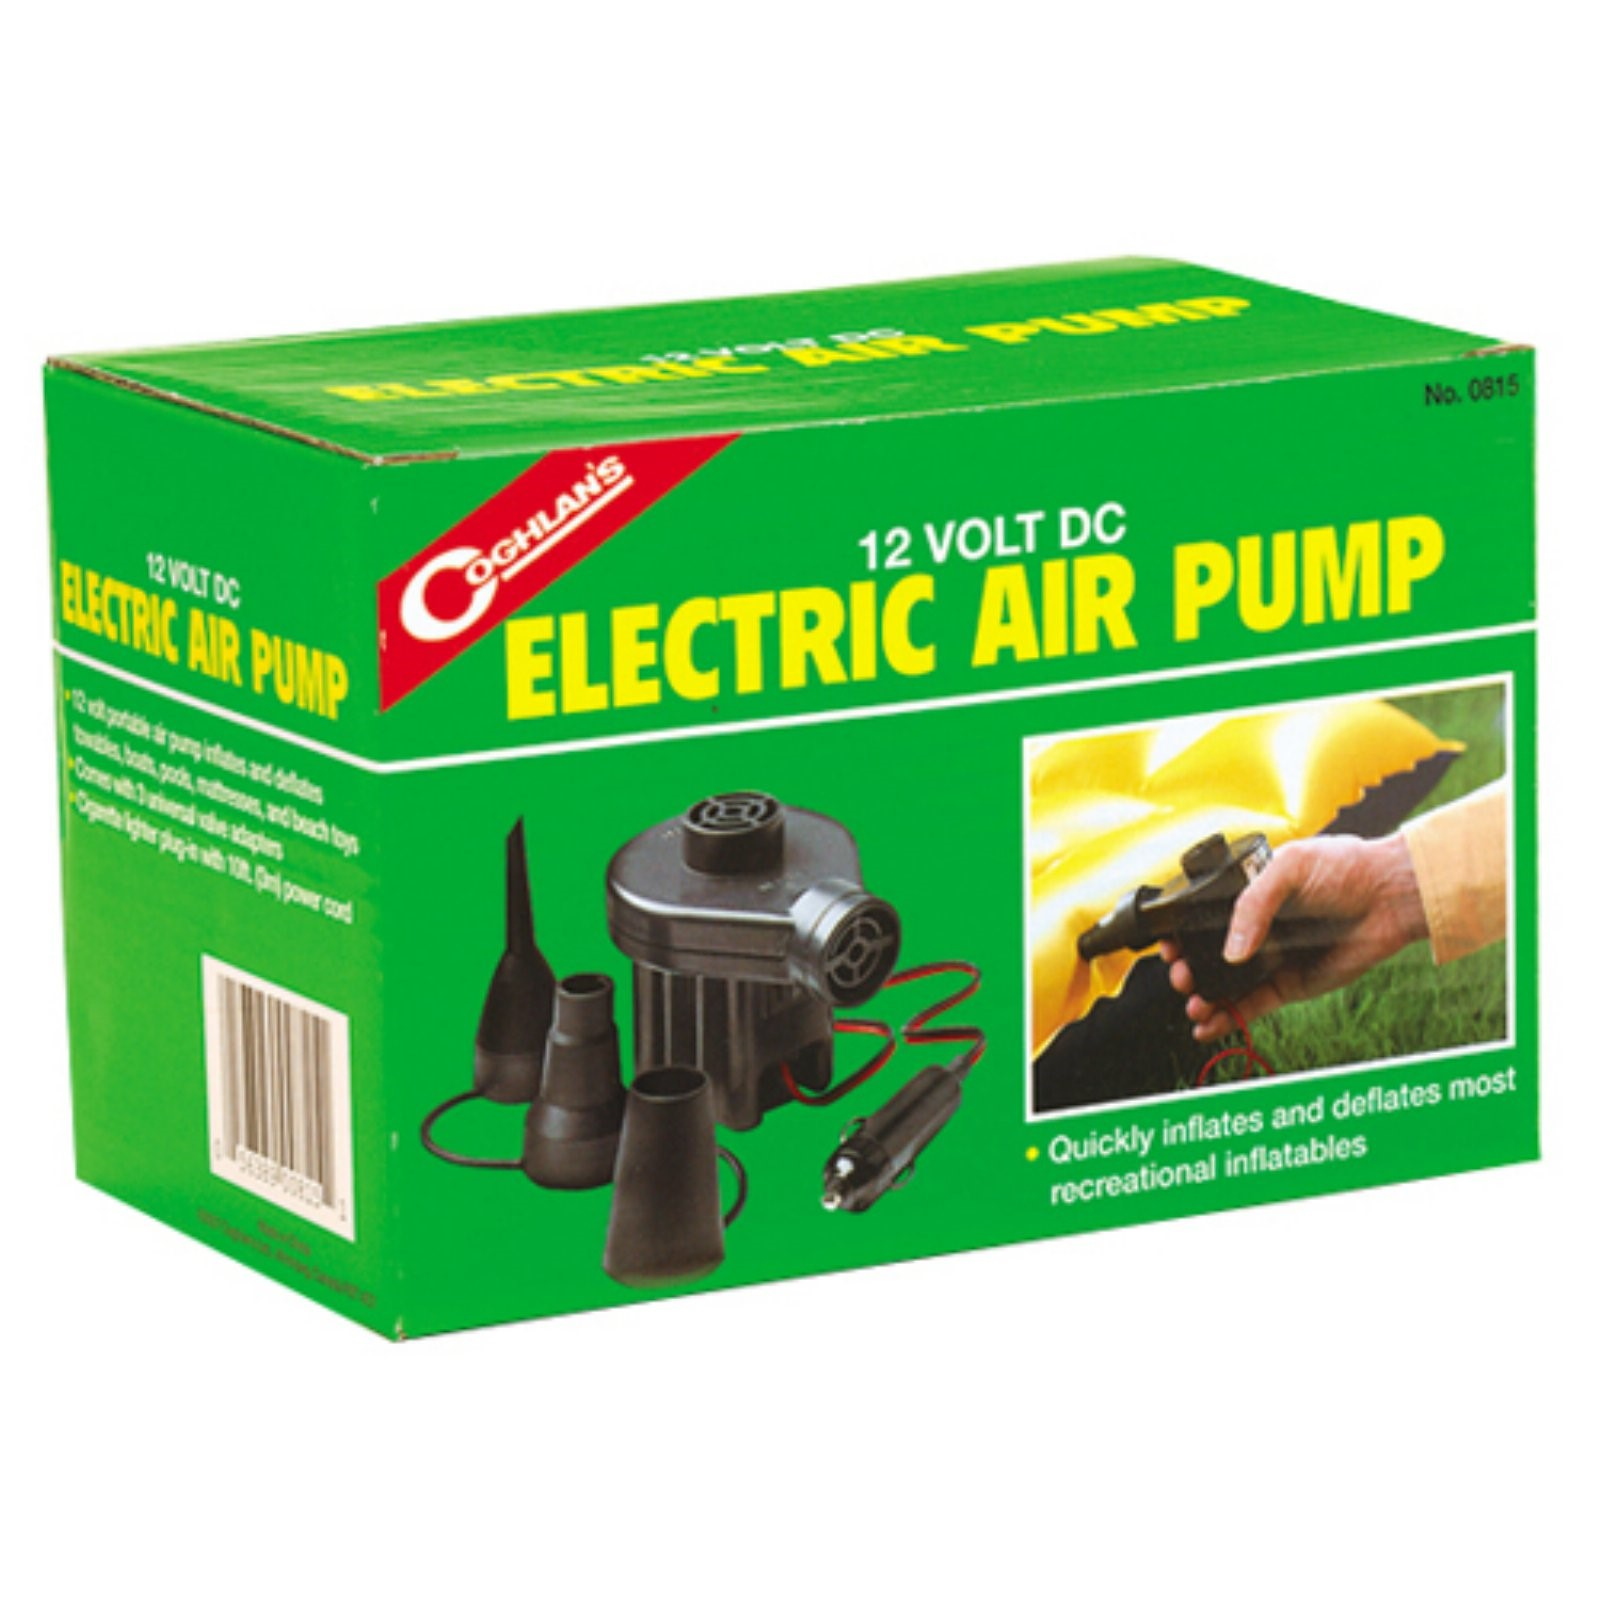 Coghlans 12V DC Electric Air Pump